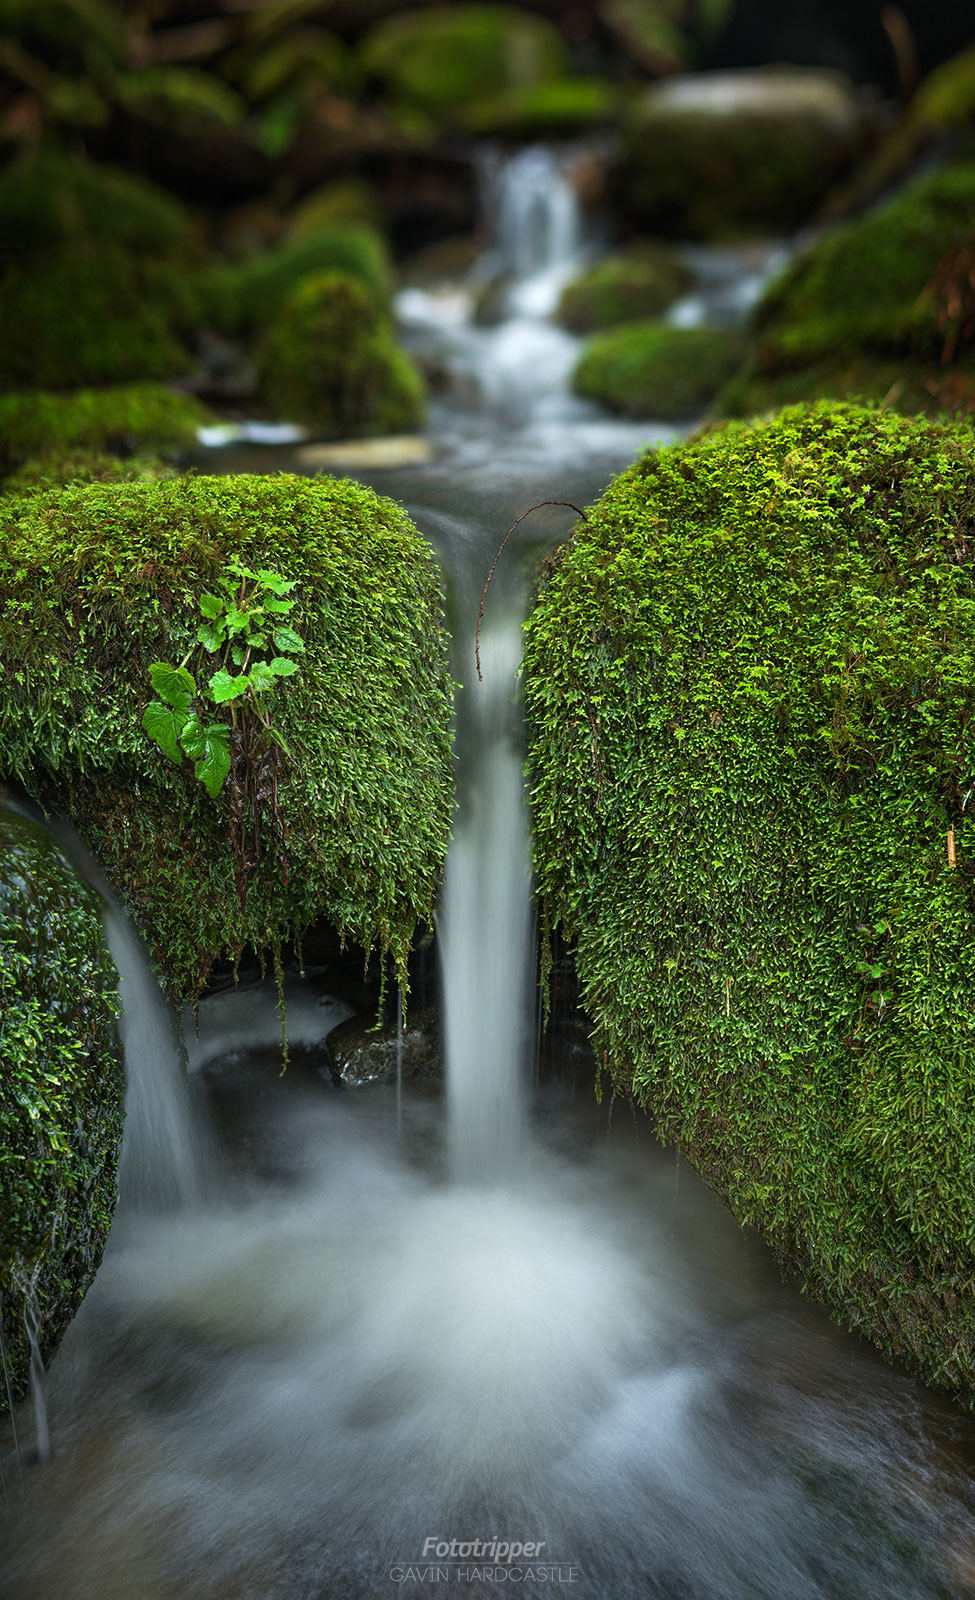 Vancouver Island Photography Workshops